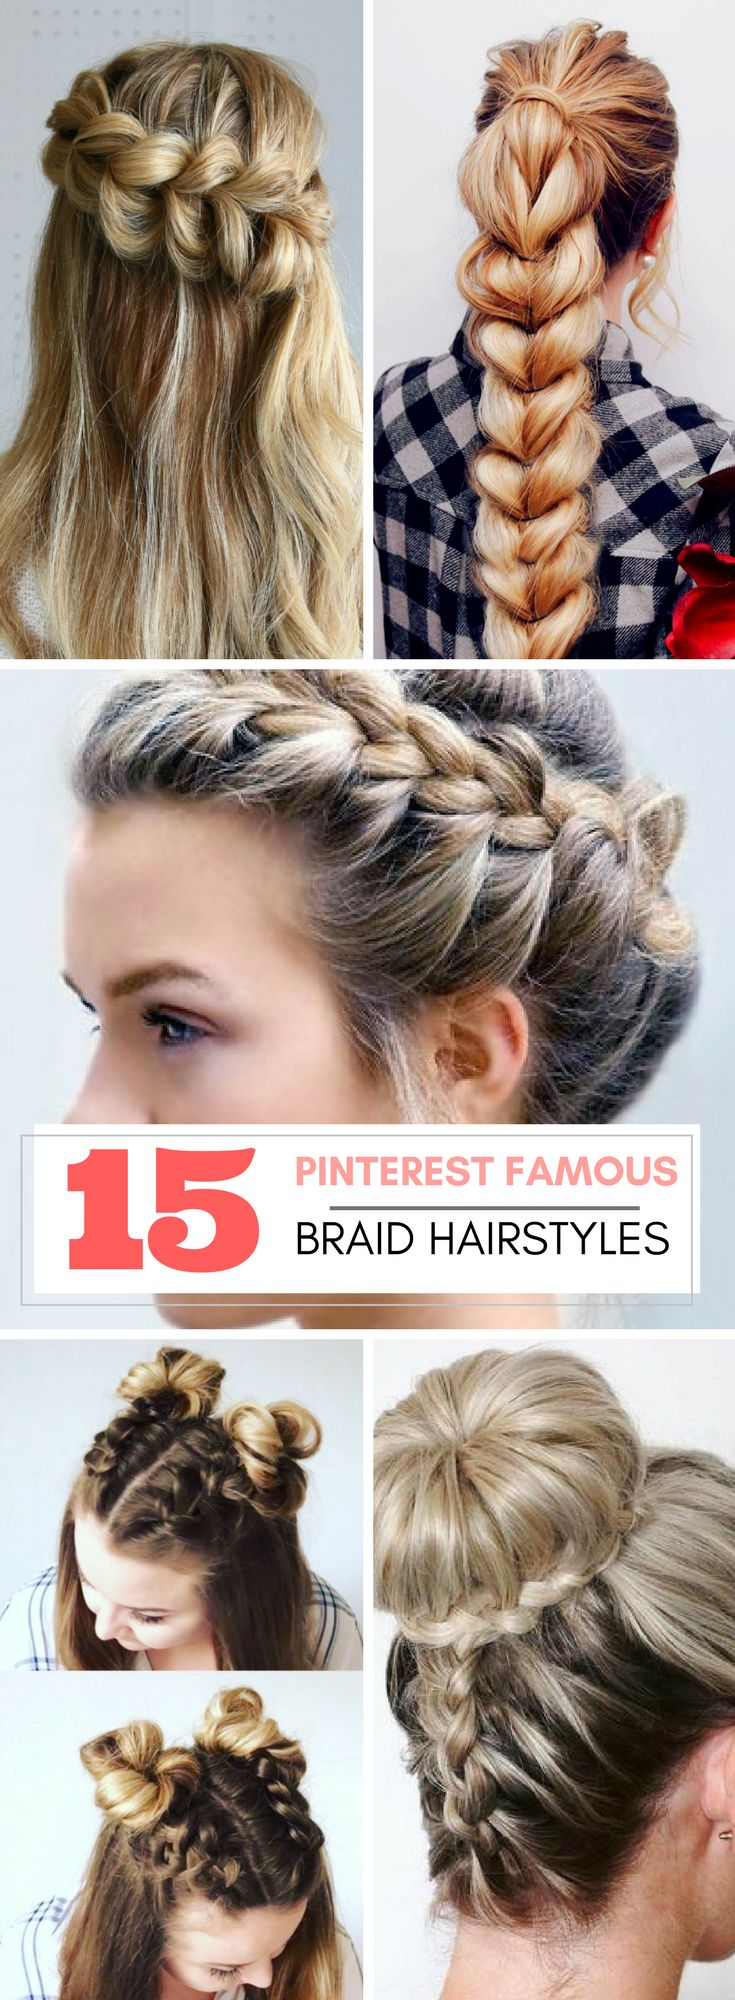 Pinterest famous braid hairstyles including dutch braid, french braid, crown braid, bubble braid, and so much more. Tips and tricks for braid hairstyles, tutorials for braid hairstyles that will make you a braiding master!